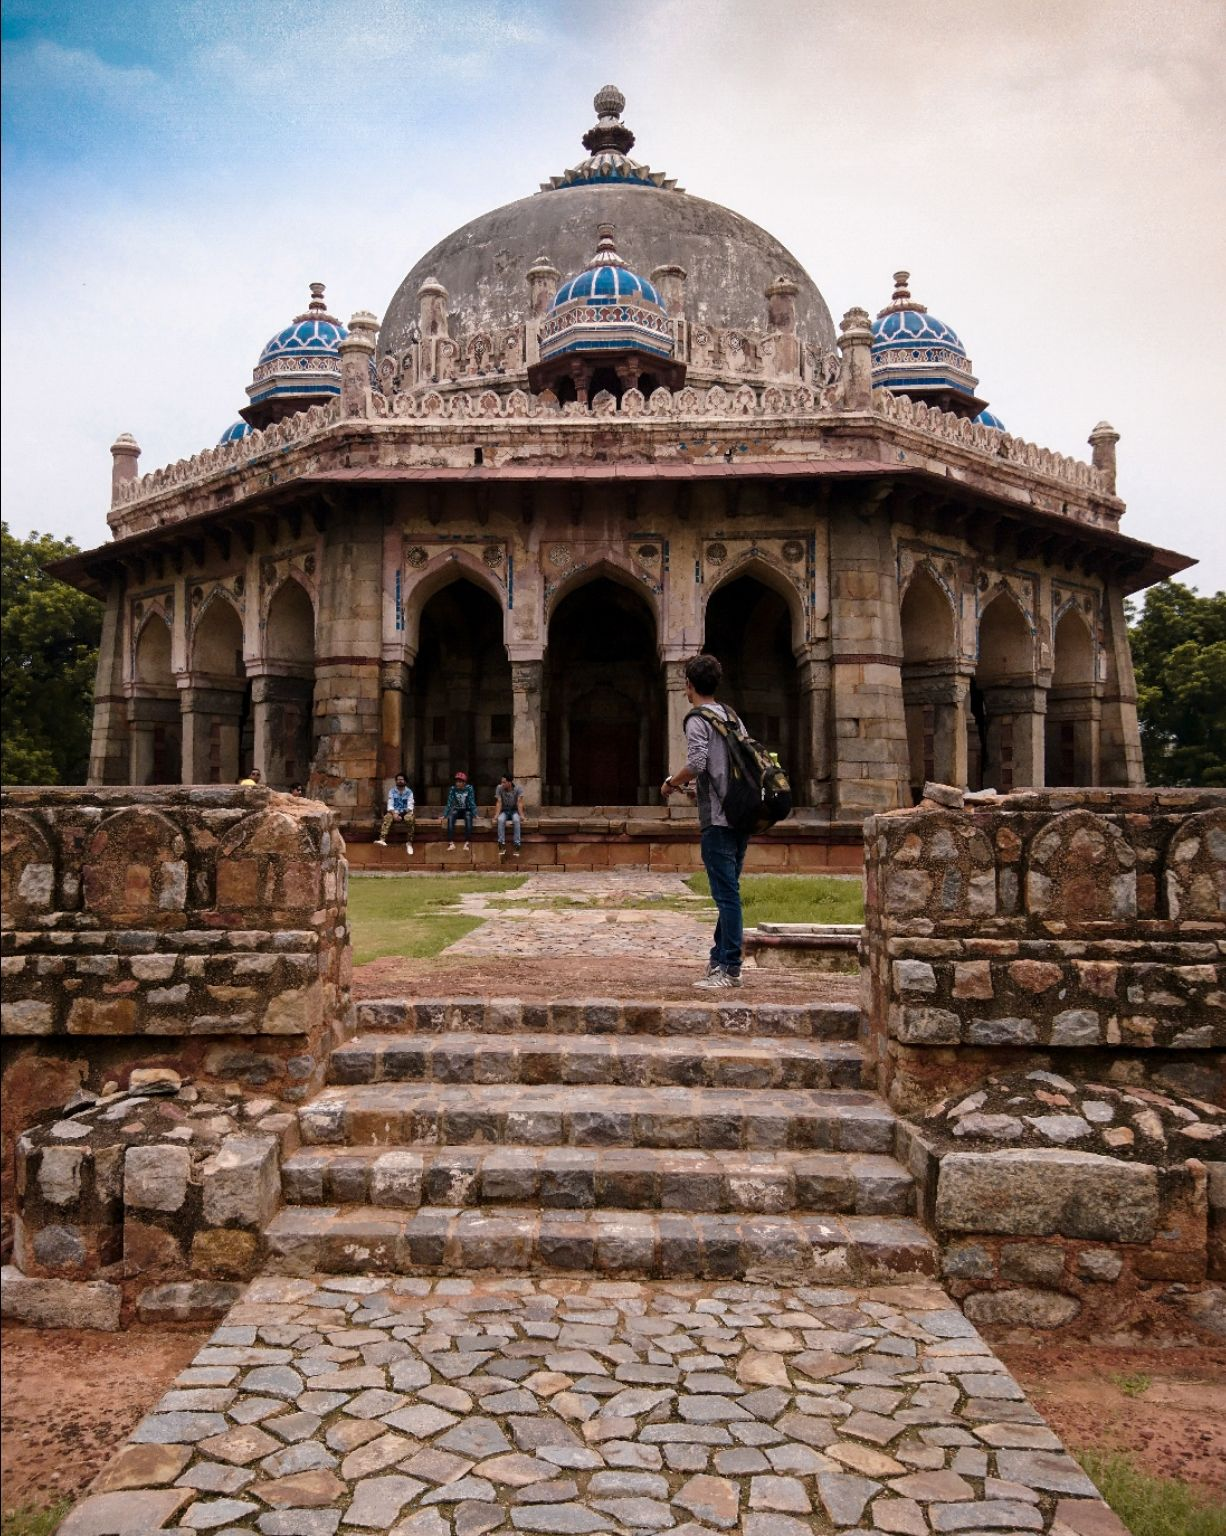 Photo of Isa Khan's Tomb By sachin chauhan